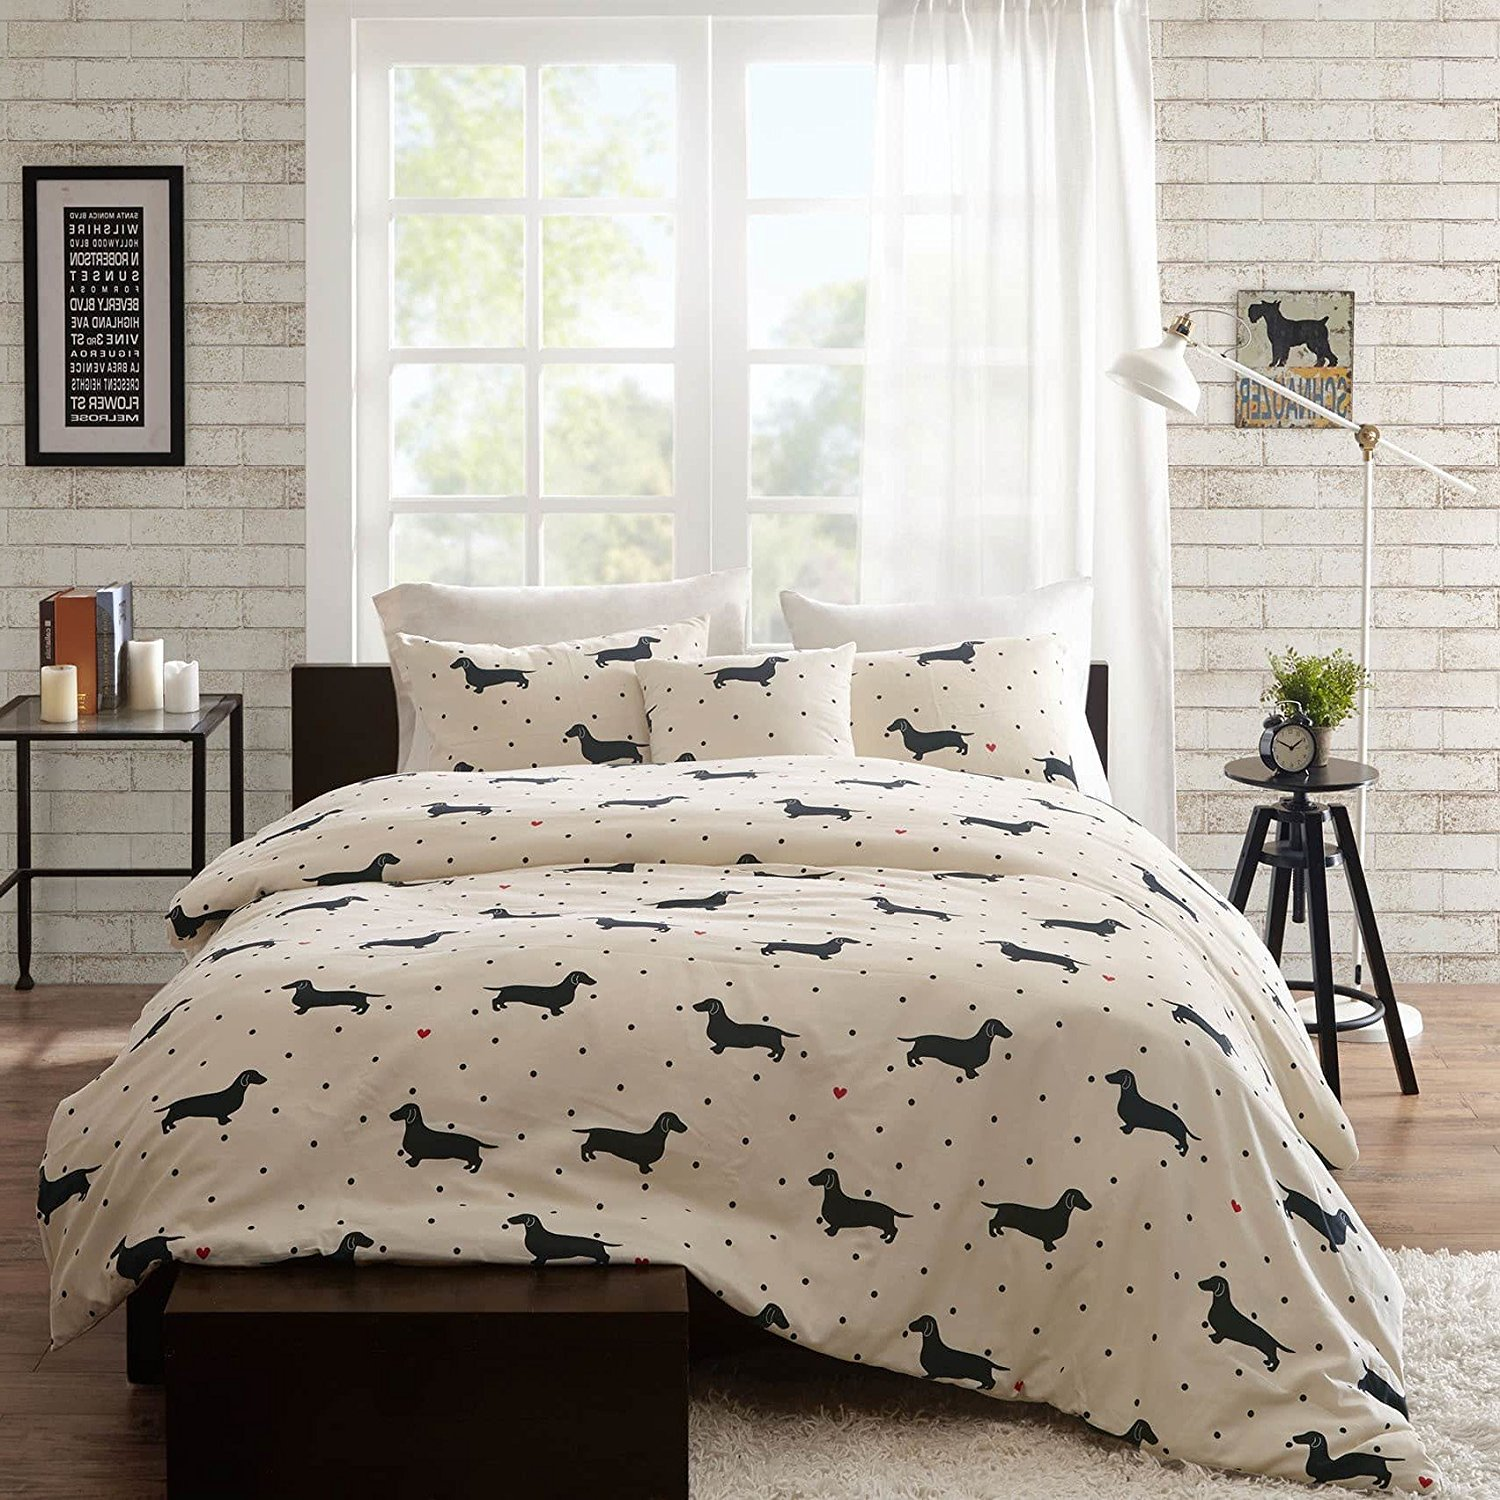 4 Piece Trendy Black Red White Full Queen Duvet Cover Set, Animal Themed Bedding Dog Modern Shabby Fun Daschund Chic Puppy Cute Adorable Contemporary Casual Polka Dot Stylish, Cotton